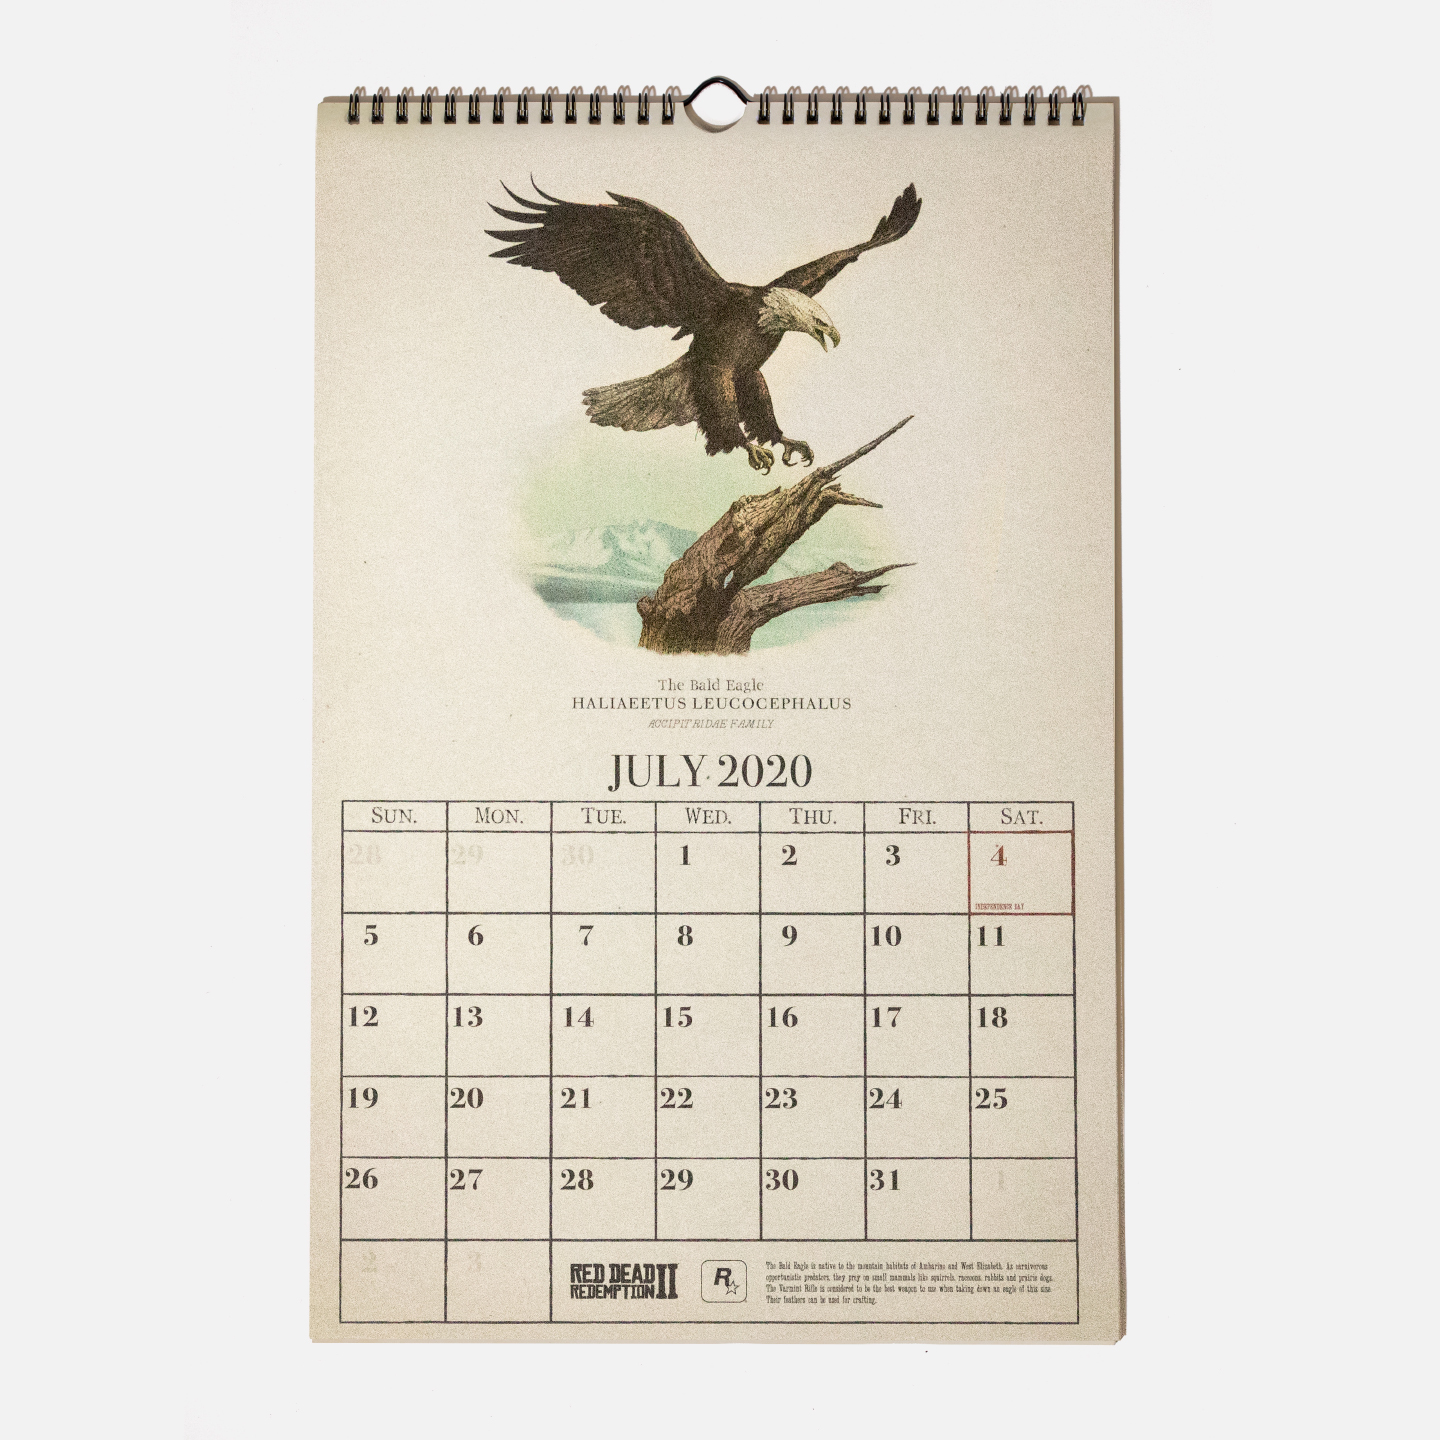 Red Dead Redemption 2 Wildlife Calendar